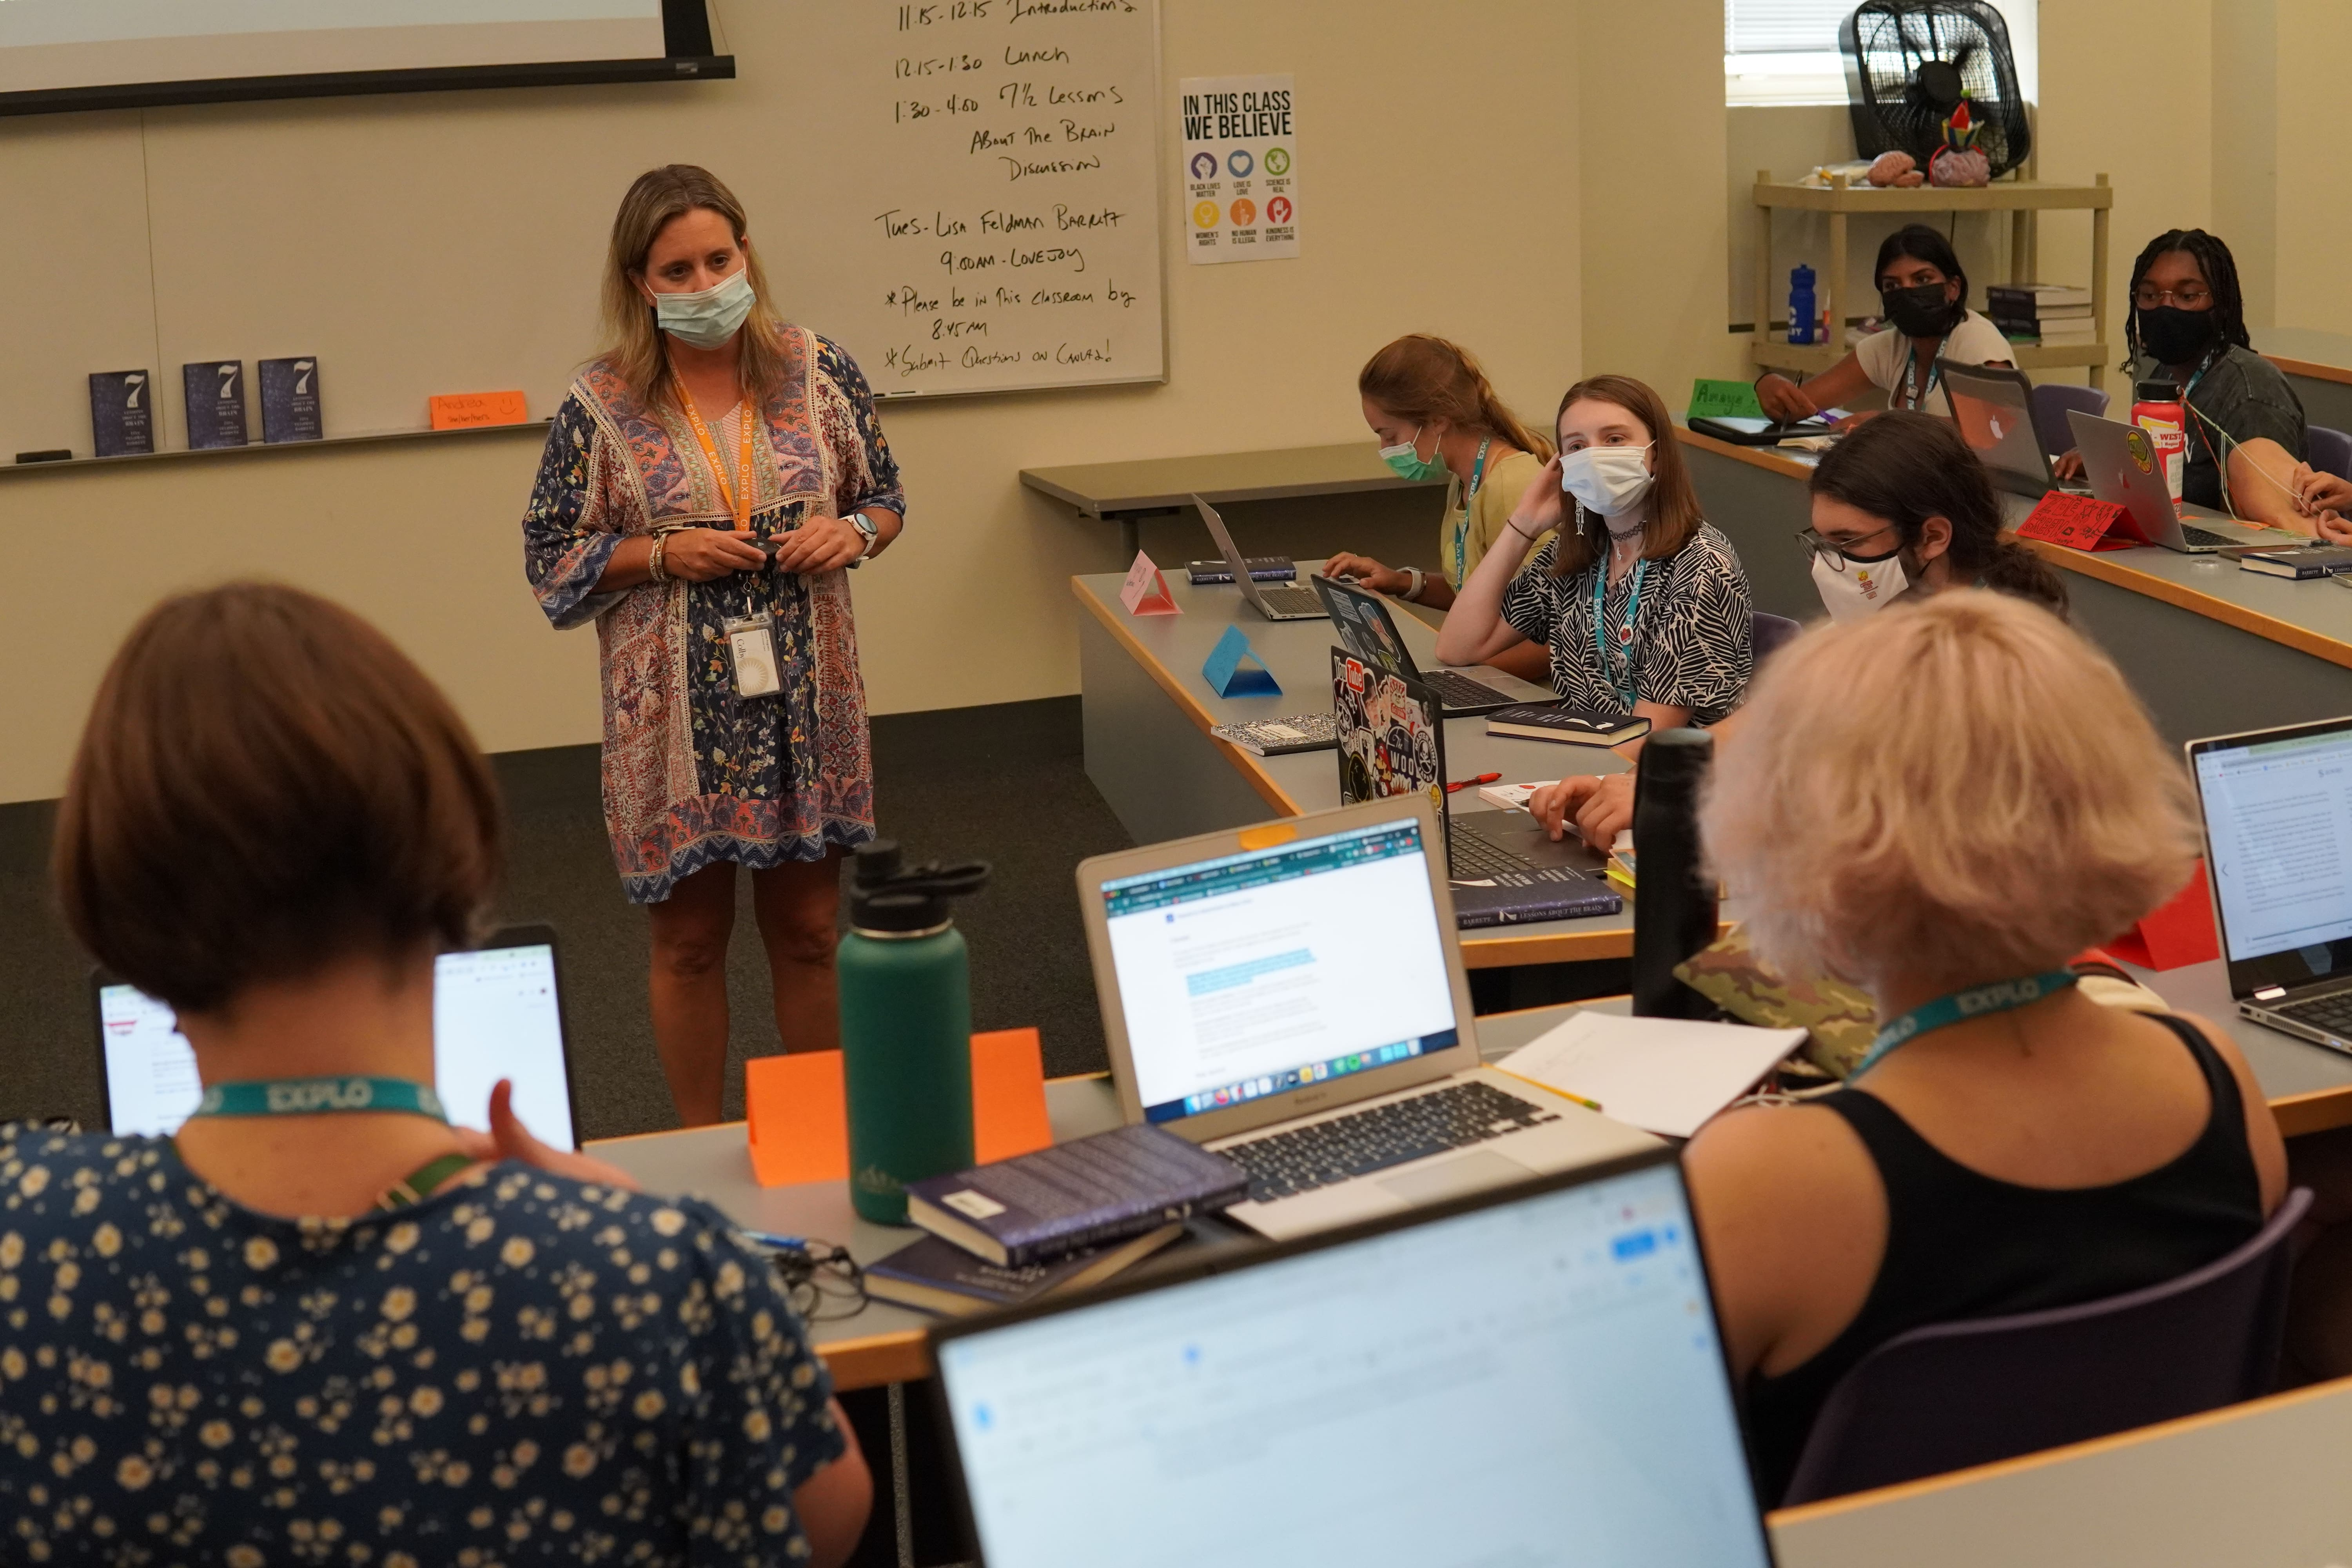 Instructor Lori speaks to students as their class discusses preconceptions about mental health.